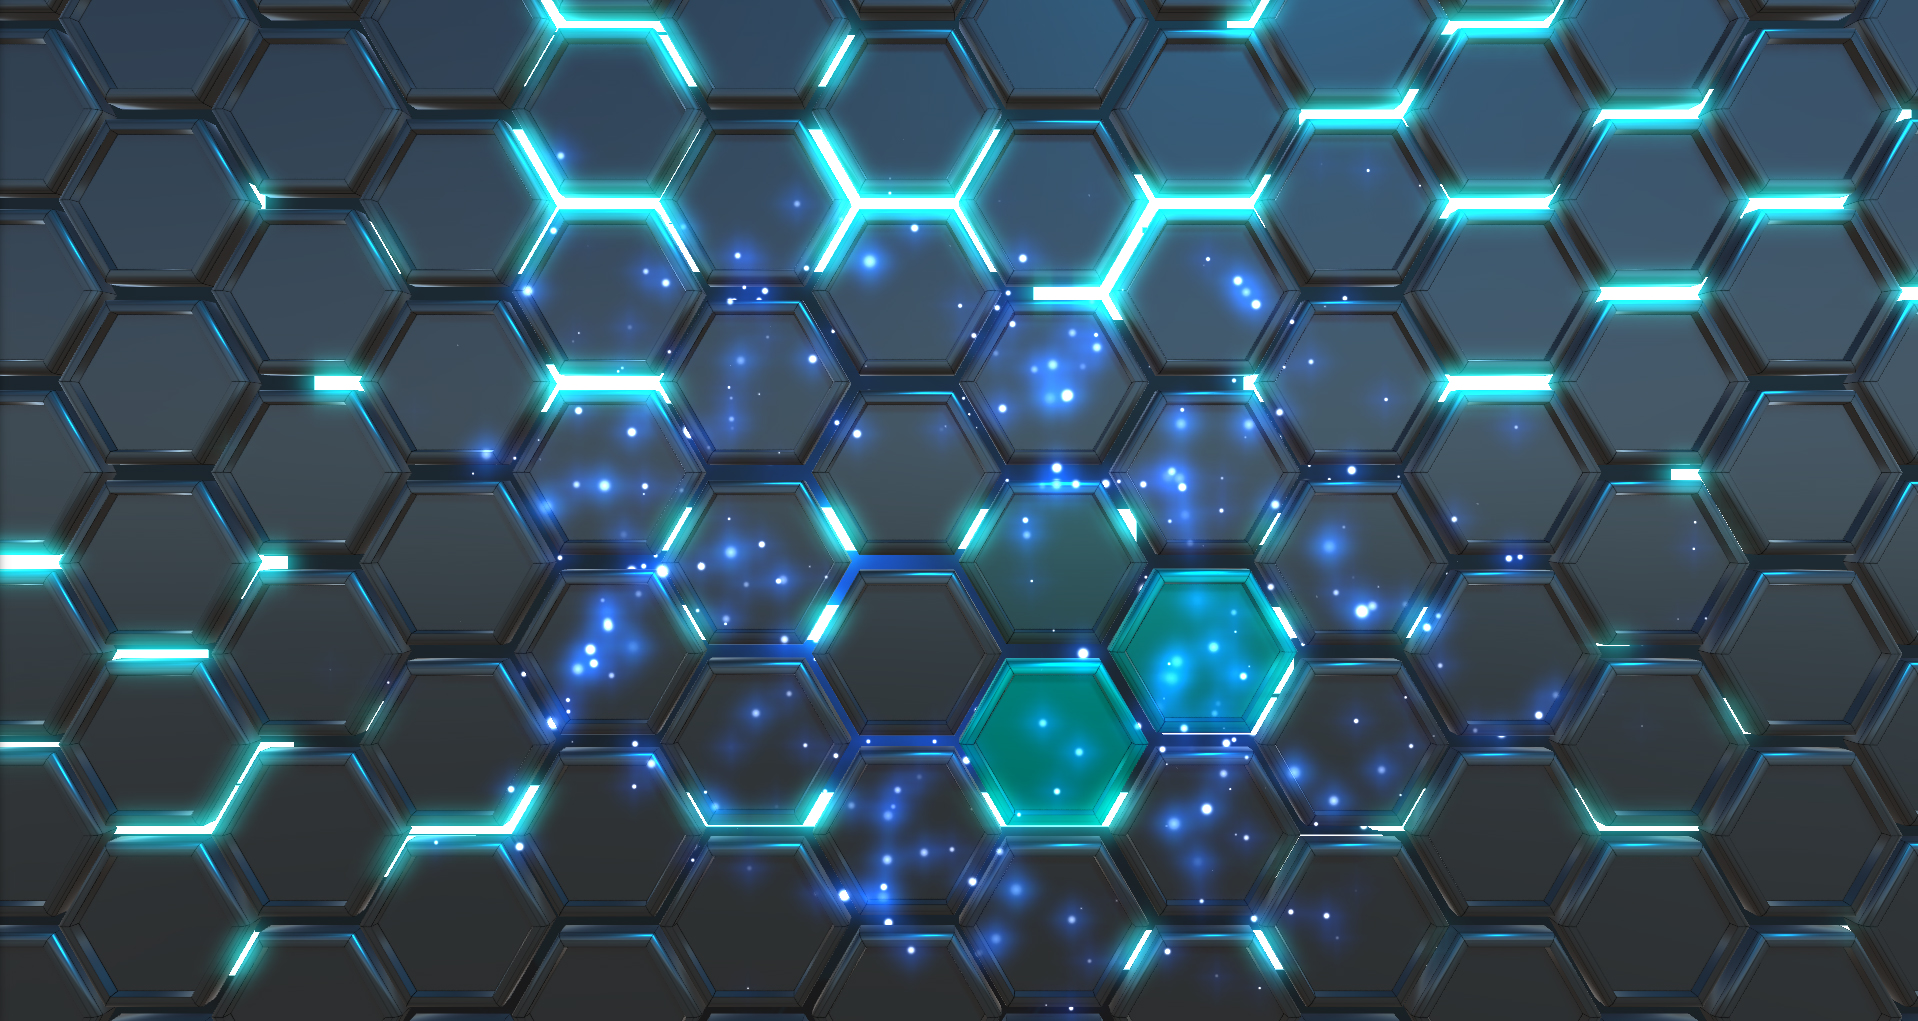 Hexagon Glow Wallpaper Engine